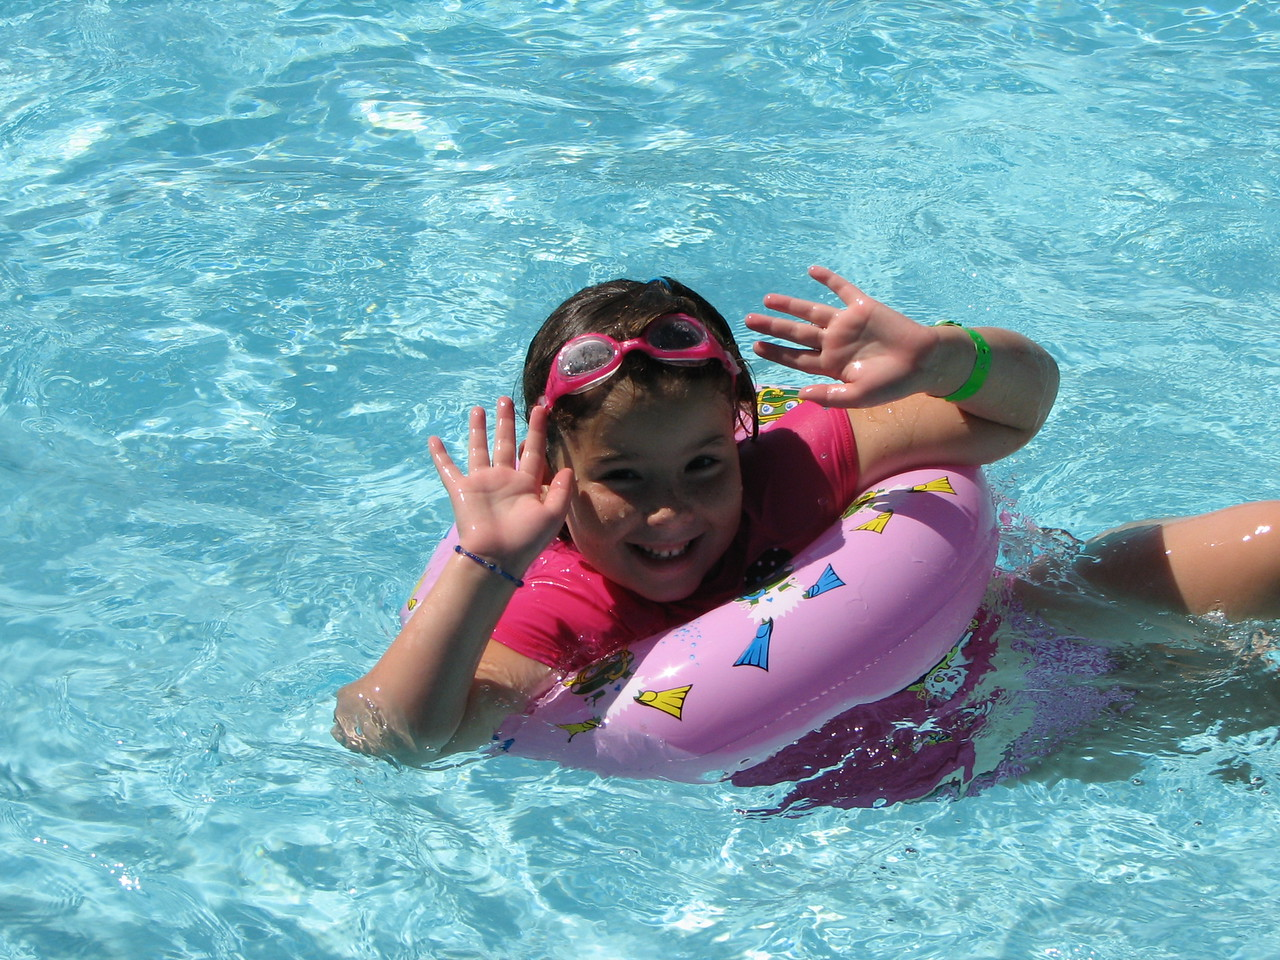 "<center><h3><strong>Road Trip Friday Pool Days</strong></h3>July 2 and August 6. 2010 To see more photos, <a href=""http://photos.compasschurch.org/Compass-Kids/2010-Archived-Photos/Road-Trip-Friday-Pool-Days/12705553_s95Lh#930851403_wncED"">click here</a>.</center>"